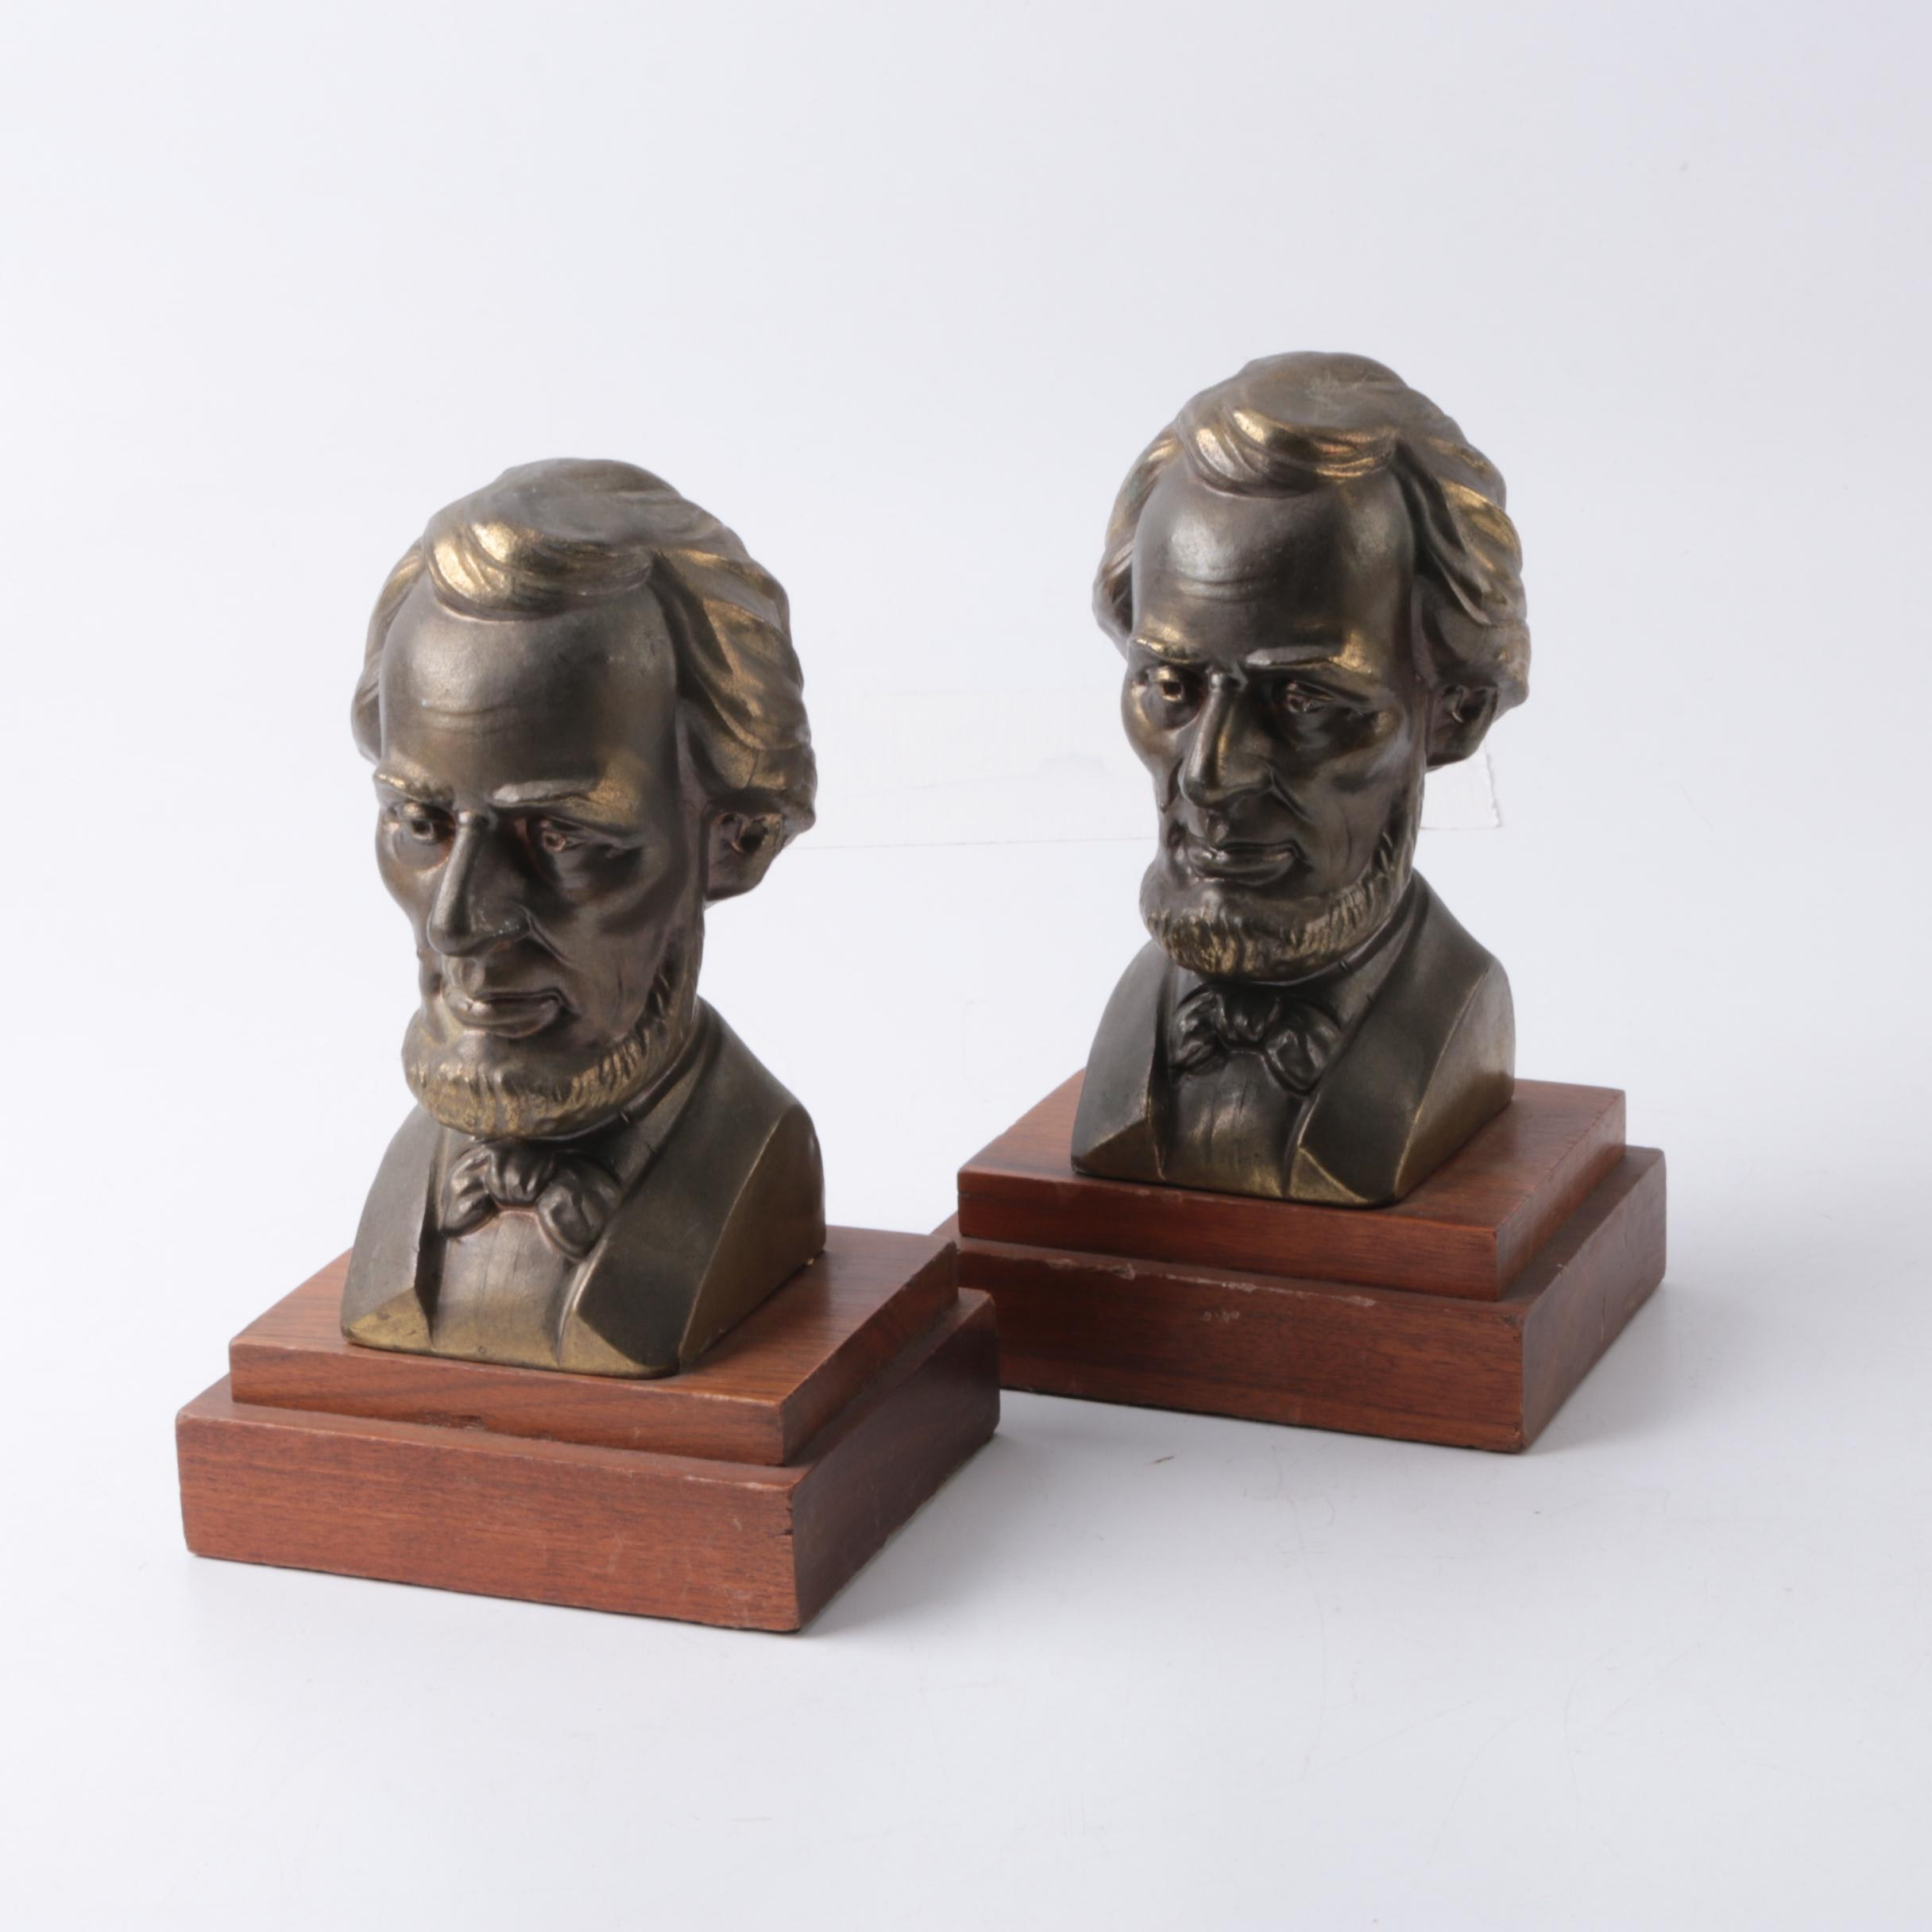 Abraham Lincoln Bust Bookends